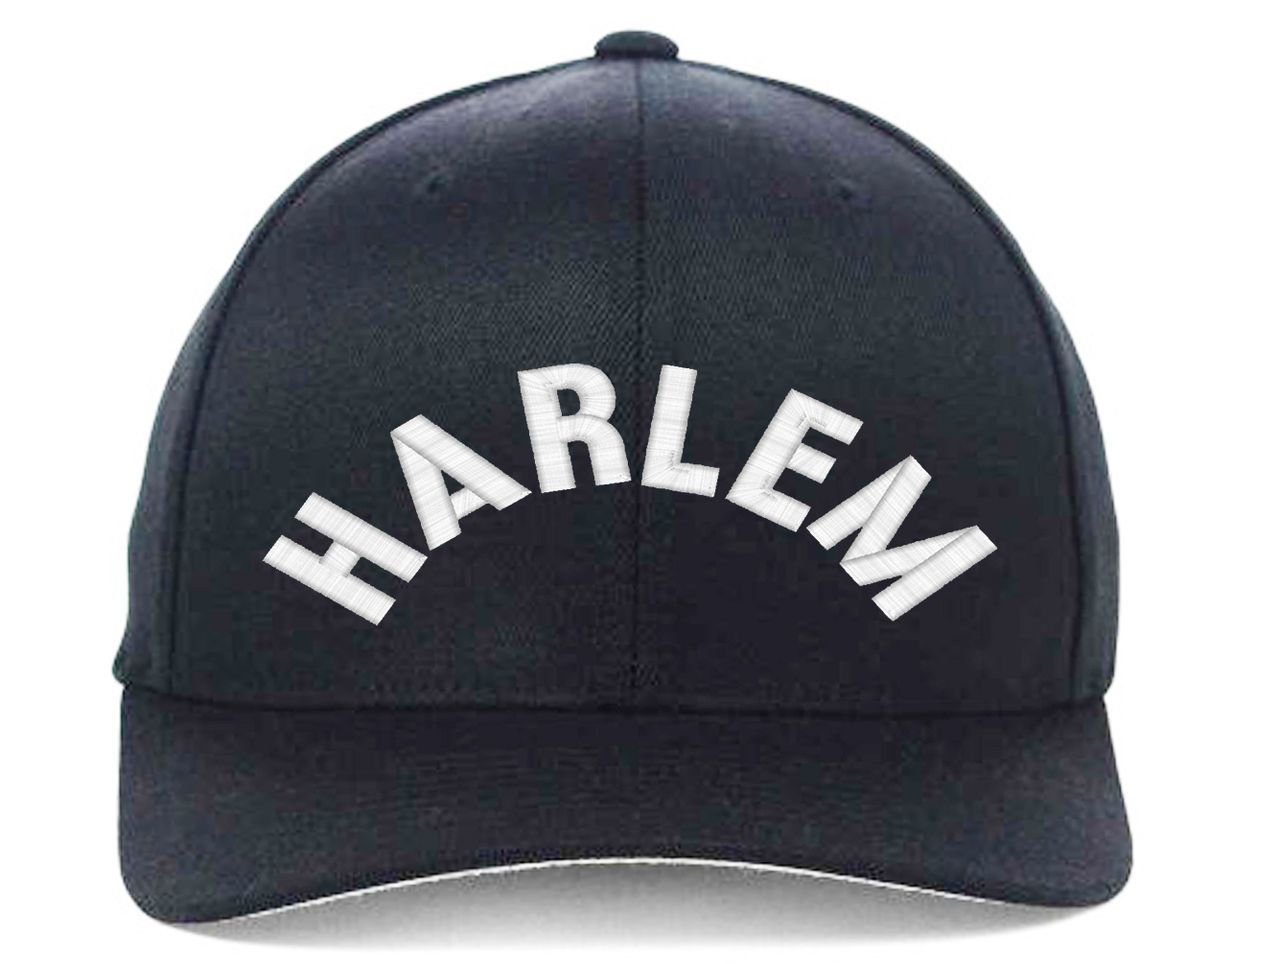 HARLEM New York, Embroidered, Flexfit Hats